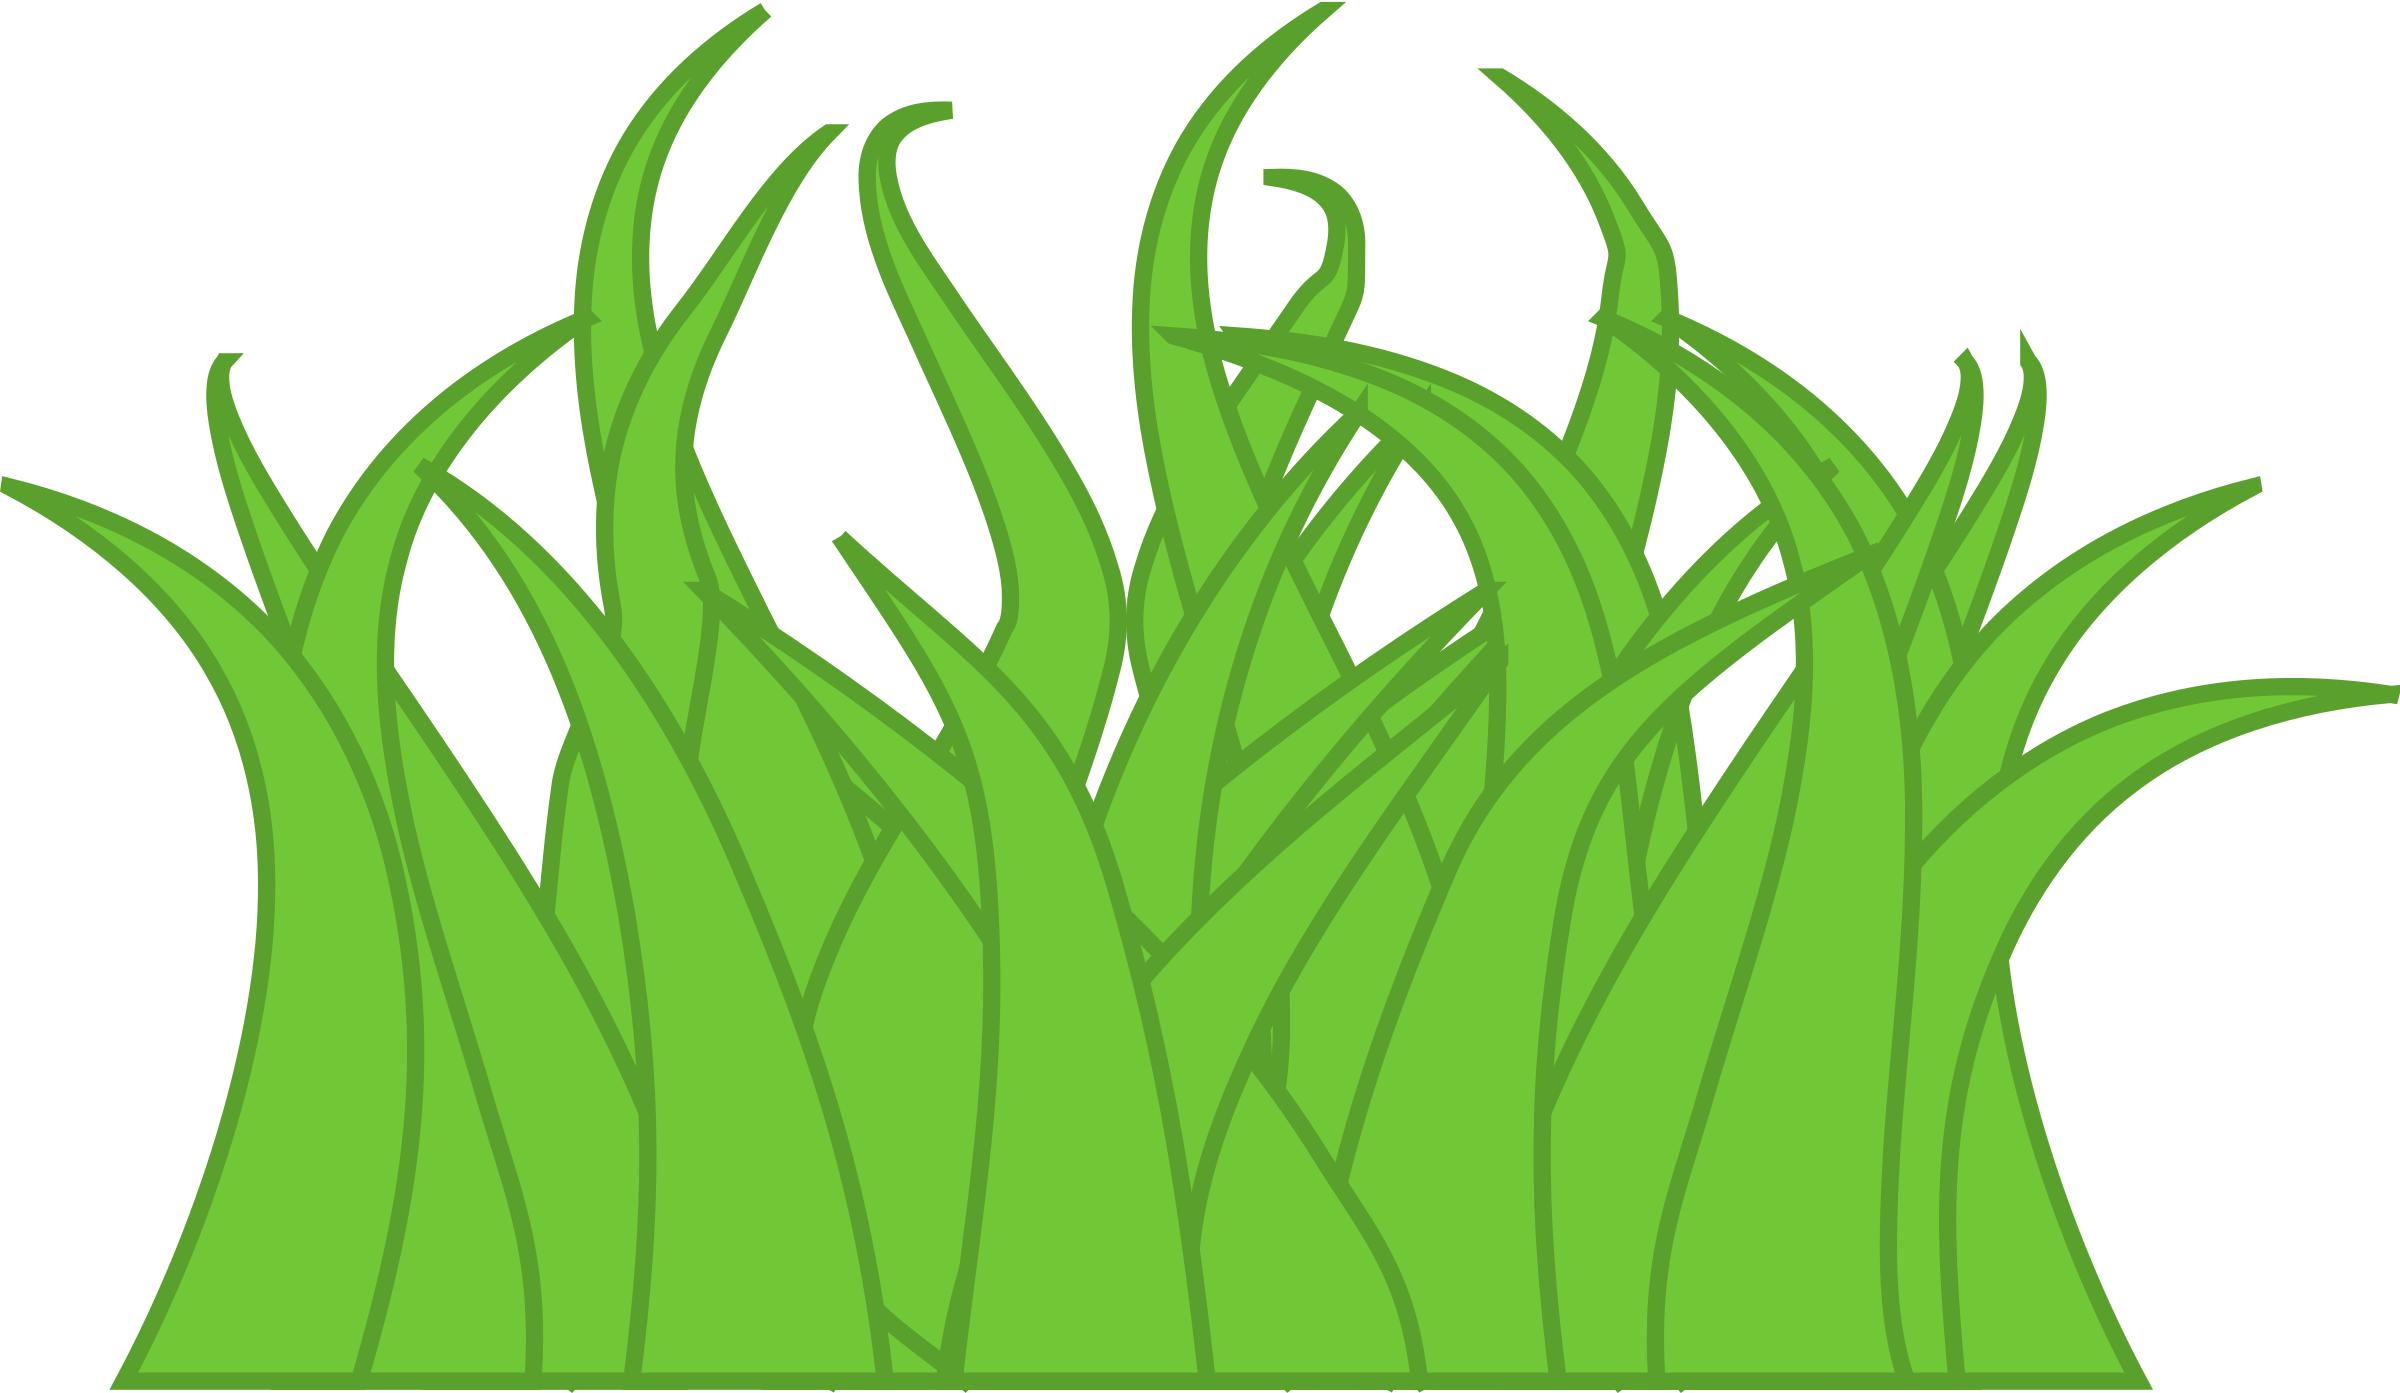 vector transparent download Seaweed clipart. Gress free on dumielauxepices.